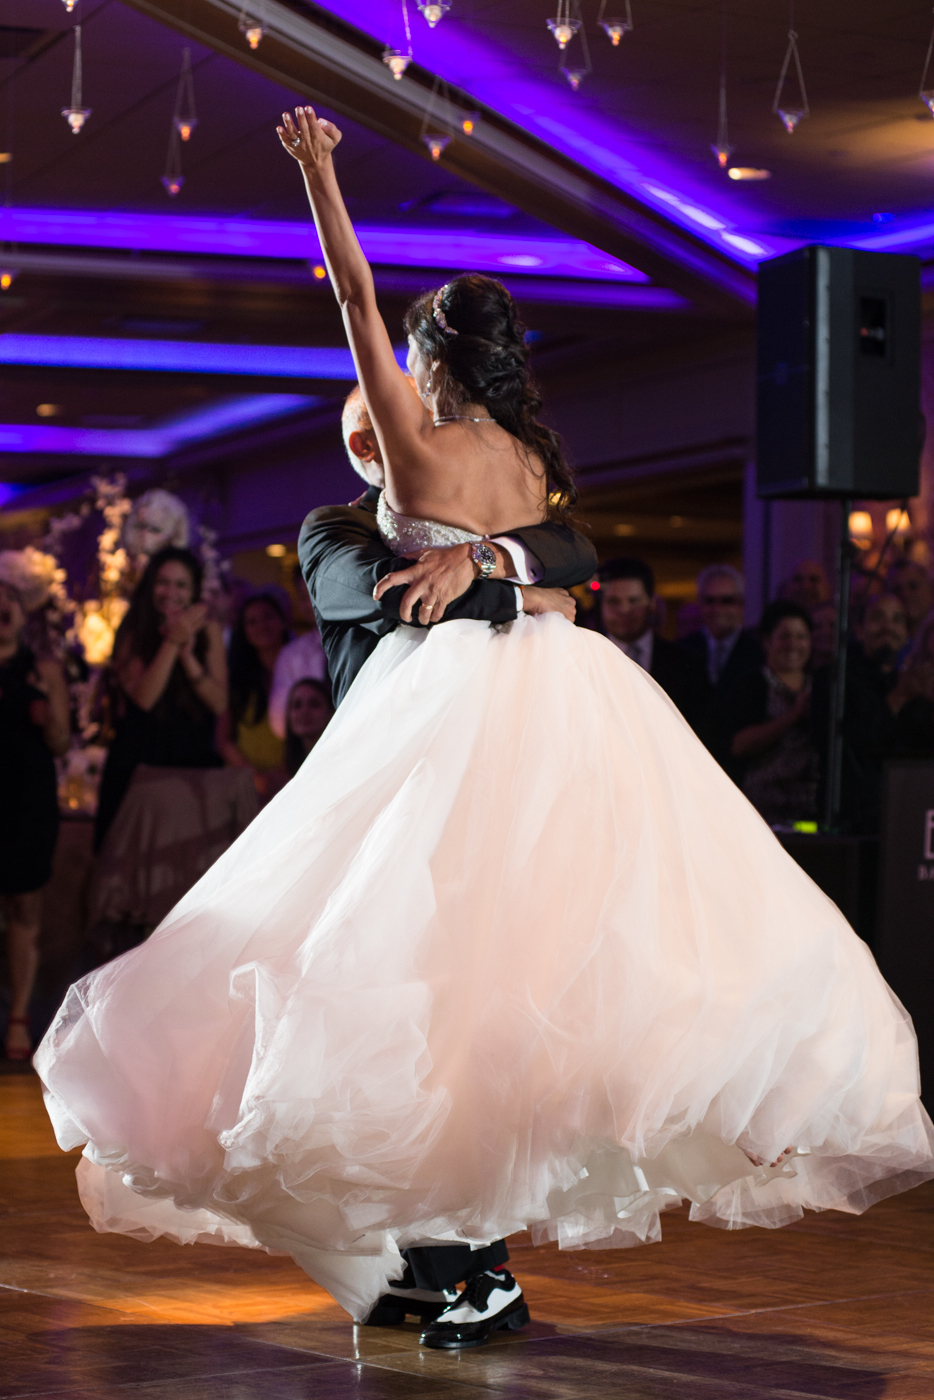 wedding-photo-westchester-new-york-njohnston-photography-44.jpg